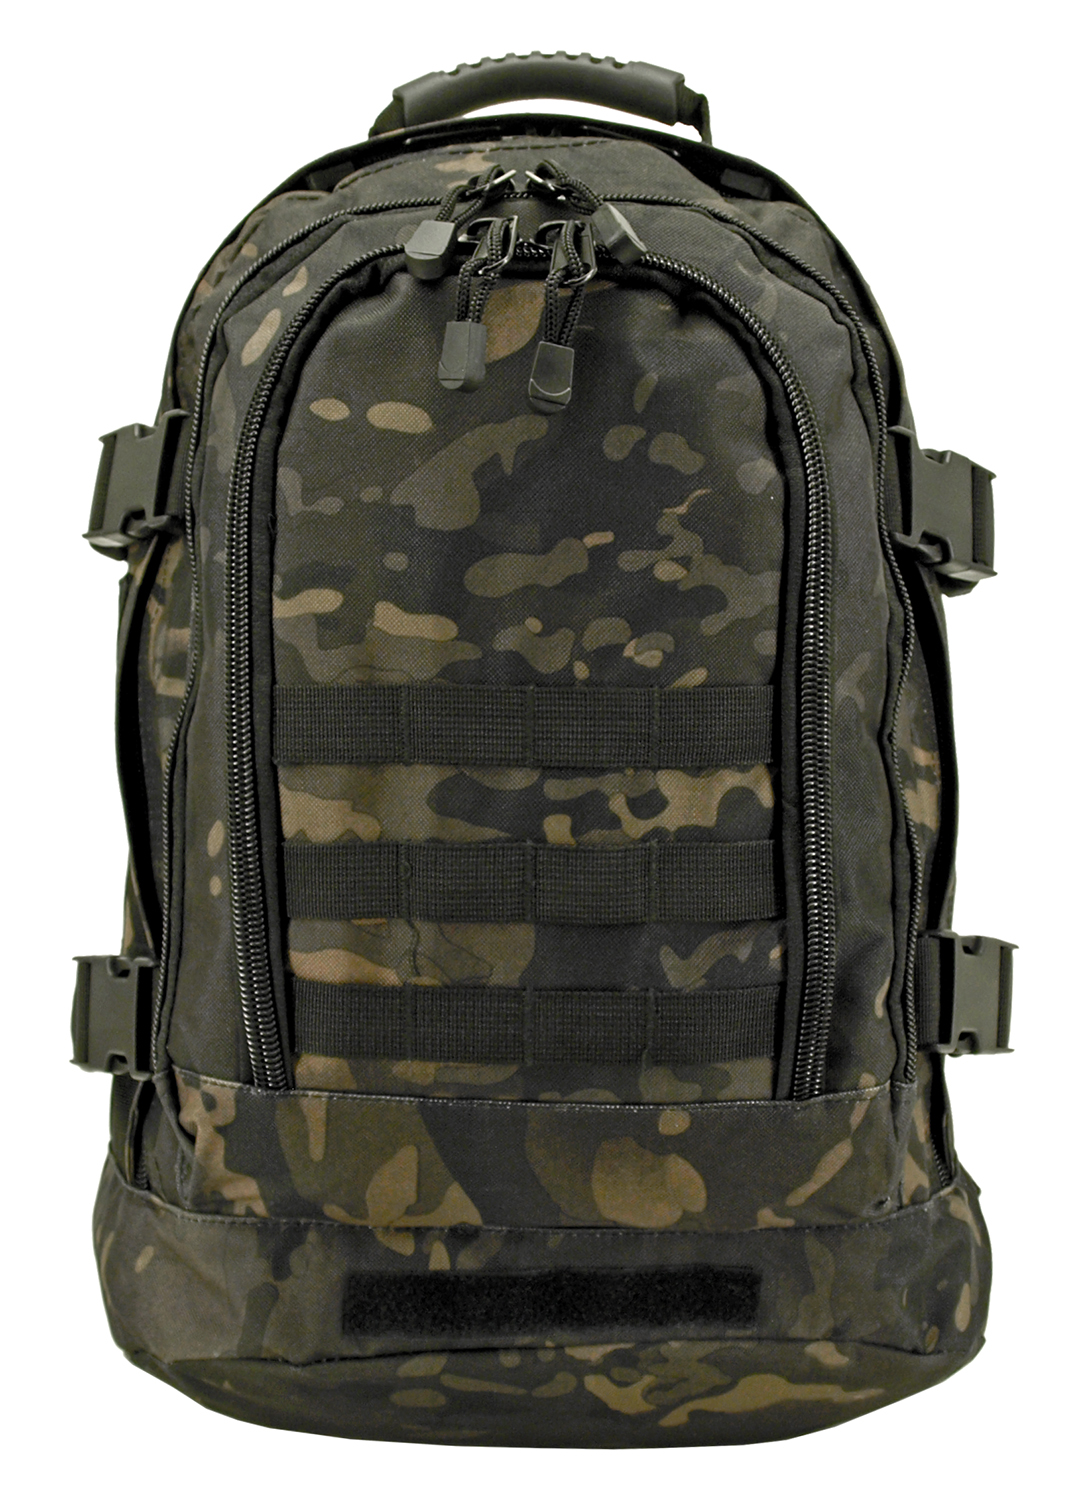 Expandable Tactical Backpack - Black Multi-Cam